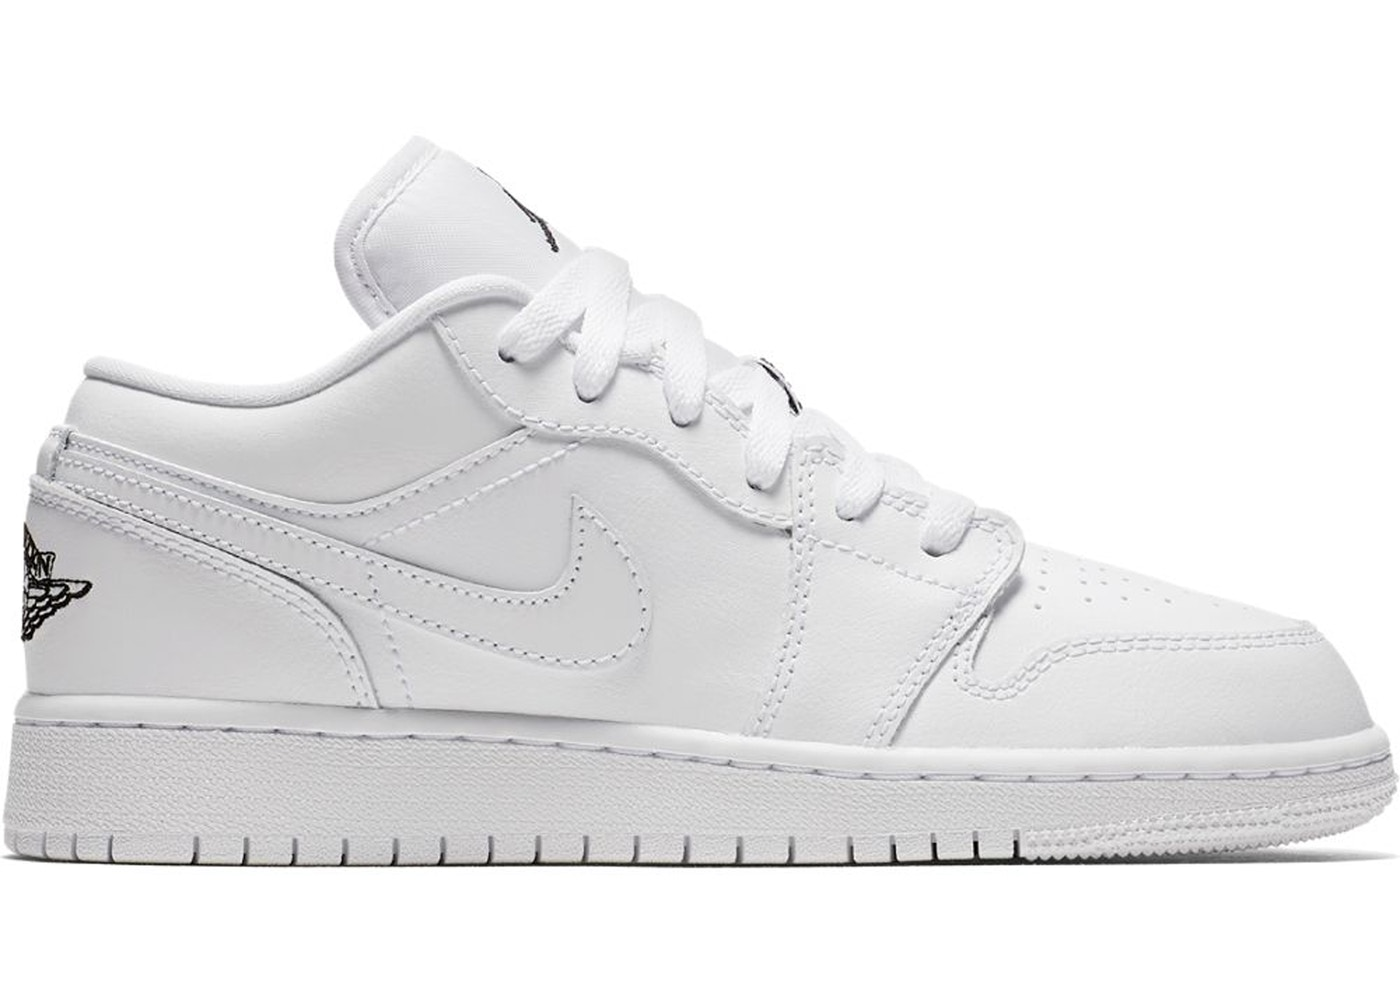 Jordan 1 Low Triple White Gs 553560 110